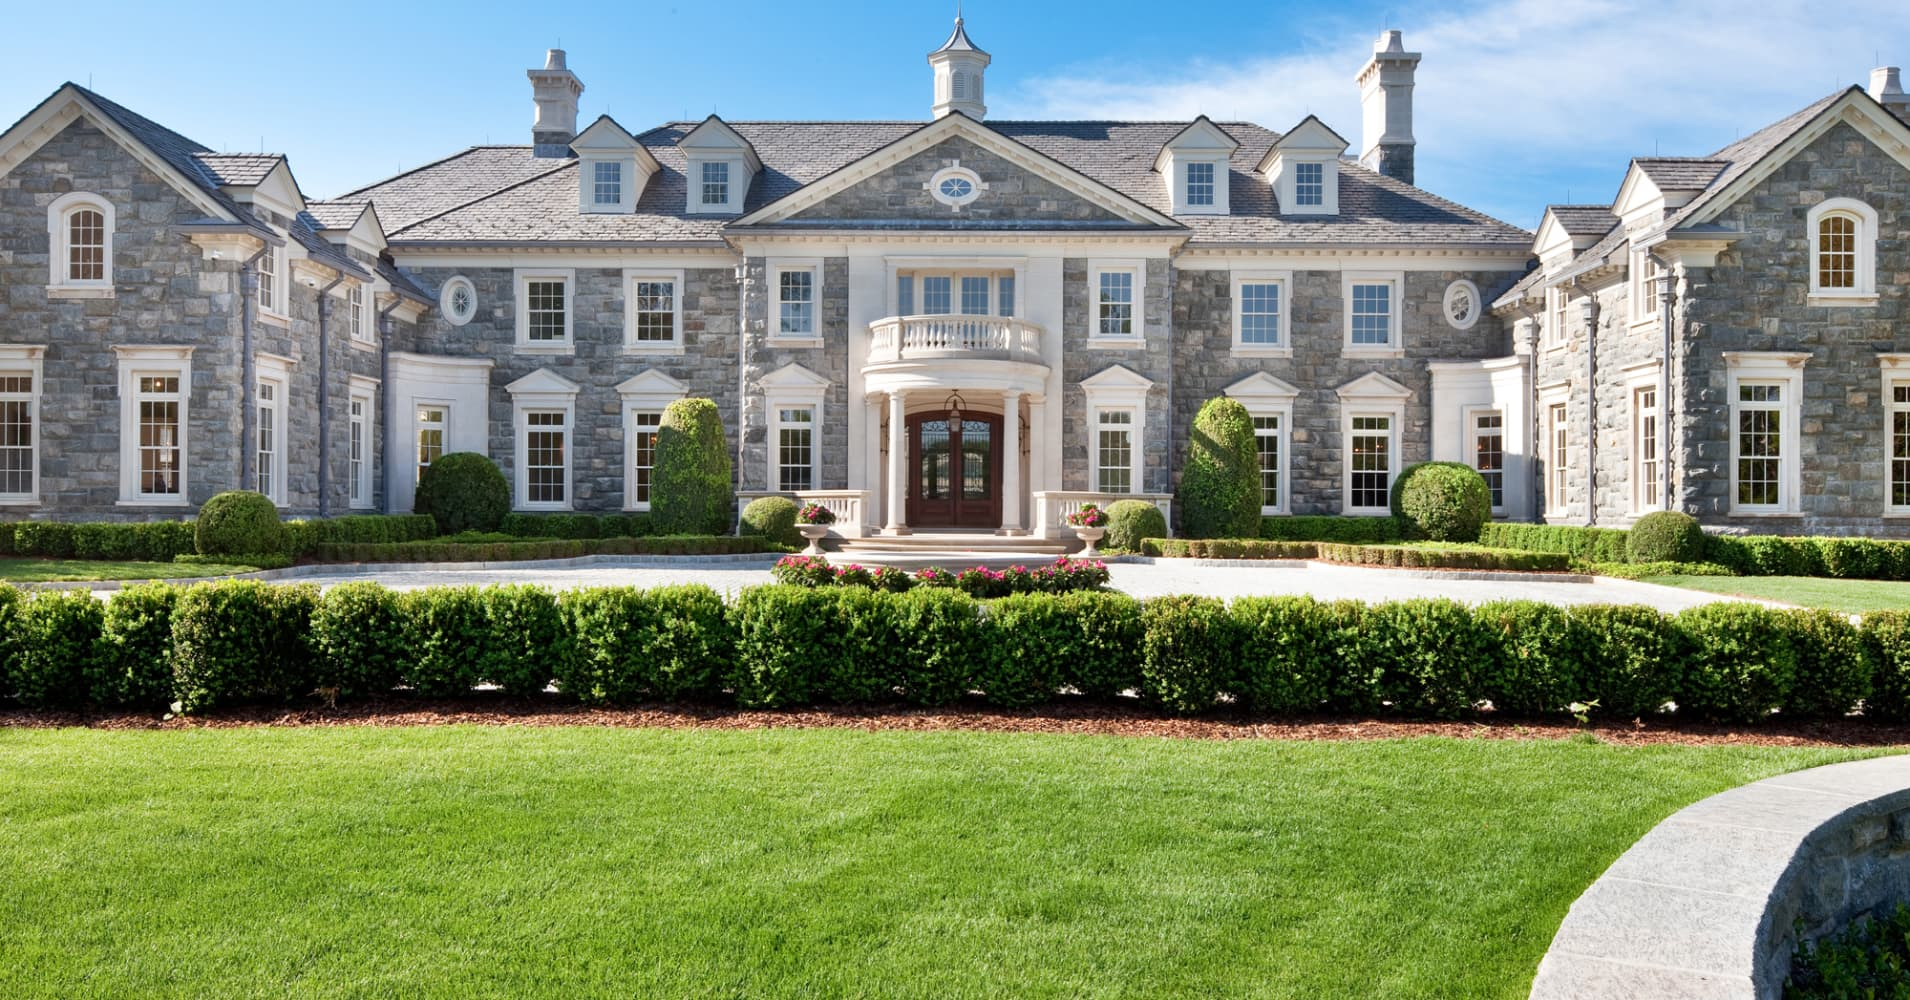 10 insane ways to pimp your megahome for Big mansion homes for sale